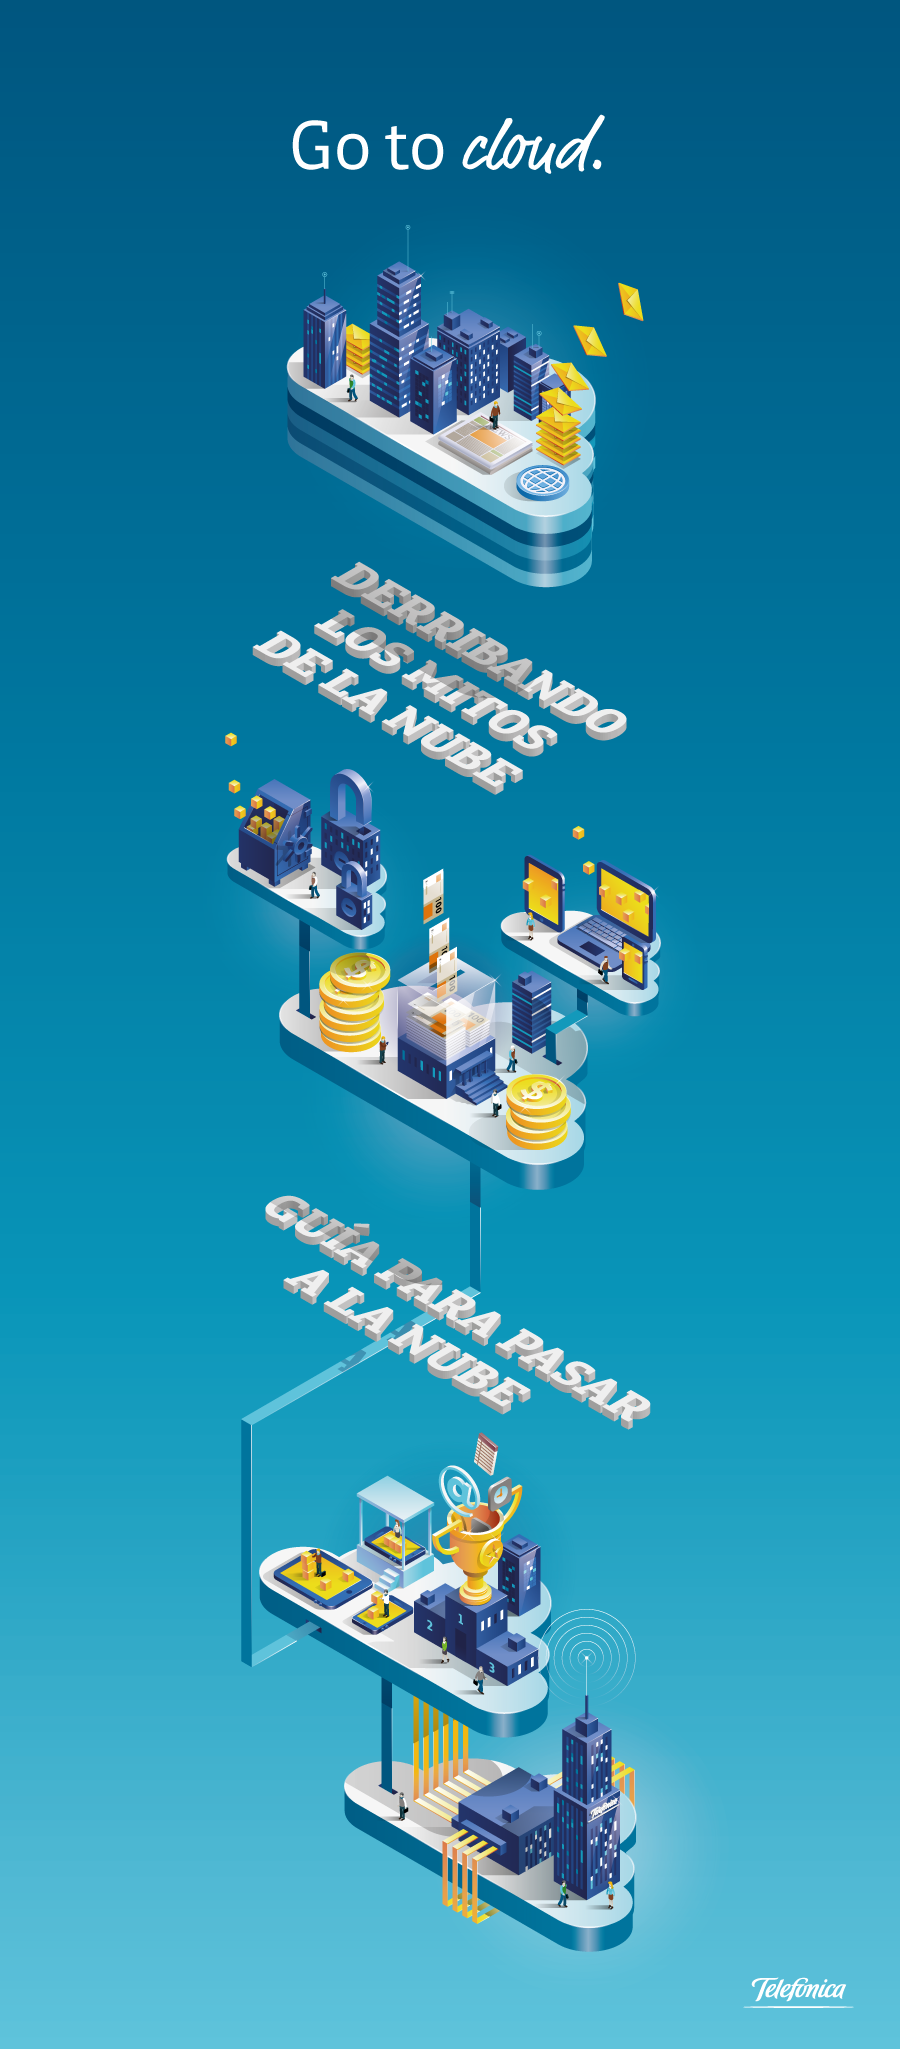 cloud computing infographic devices tech Isometric vector